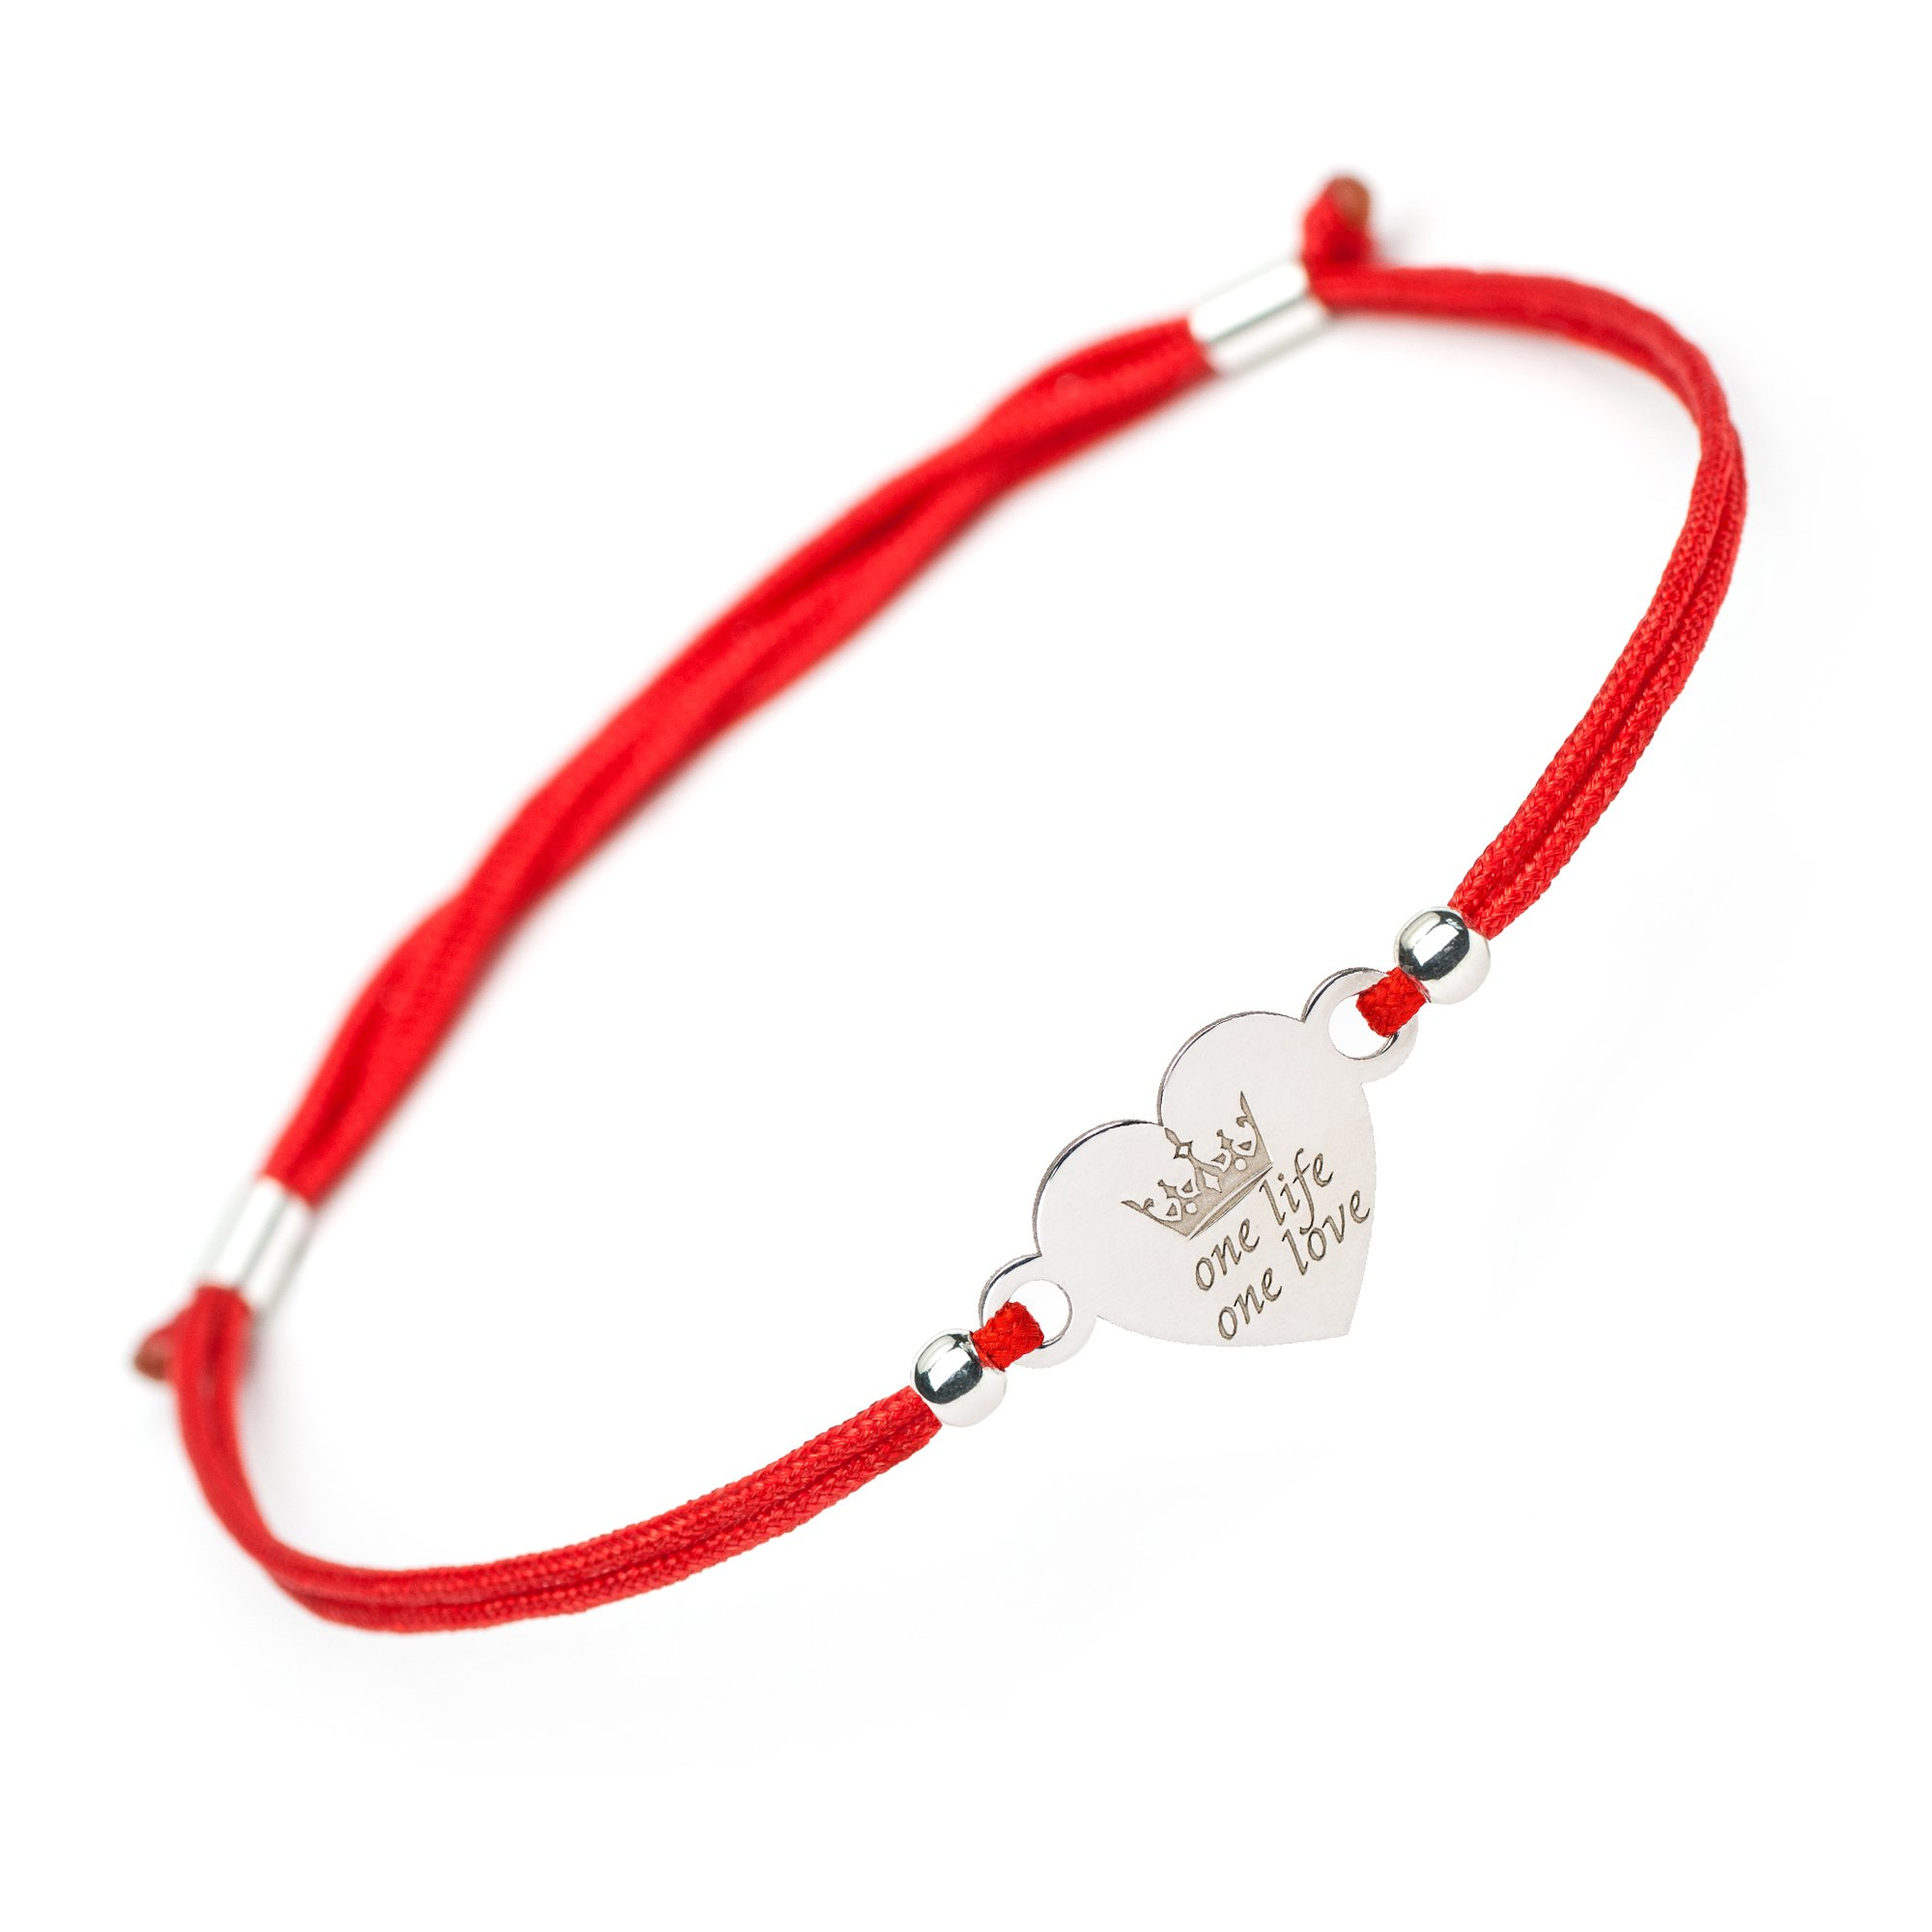 Handmade Friendship Inspirational Love Bracelet - 1Life 1Love Crown Heart Sterling Silver Charm - Red String Evil Eye Protection Matching Couple Believe Gift Bracelets for Girls Women Sister Daughter